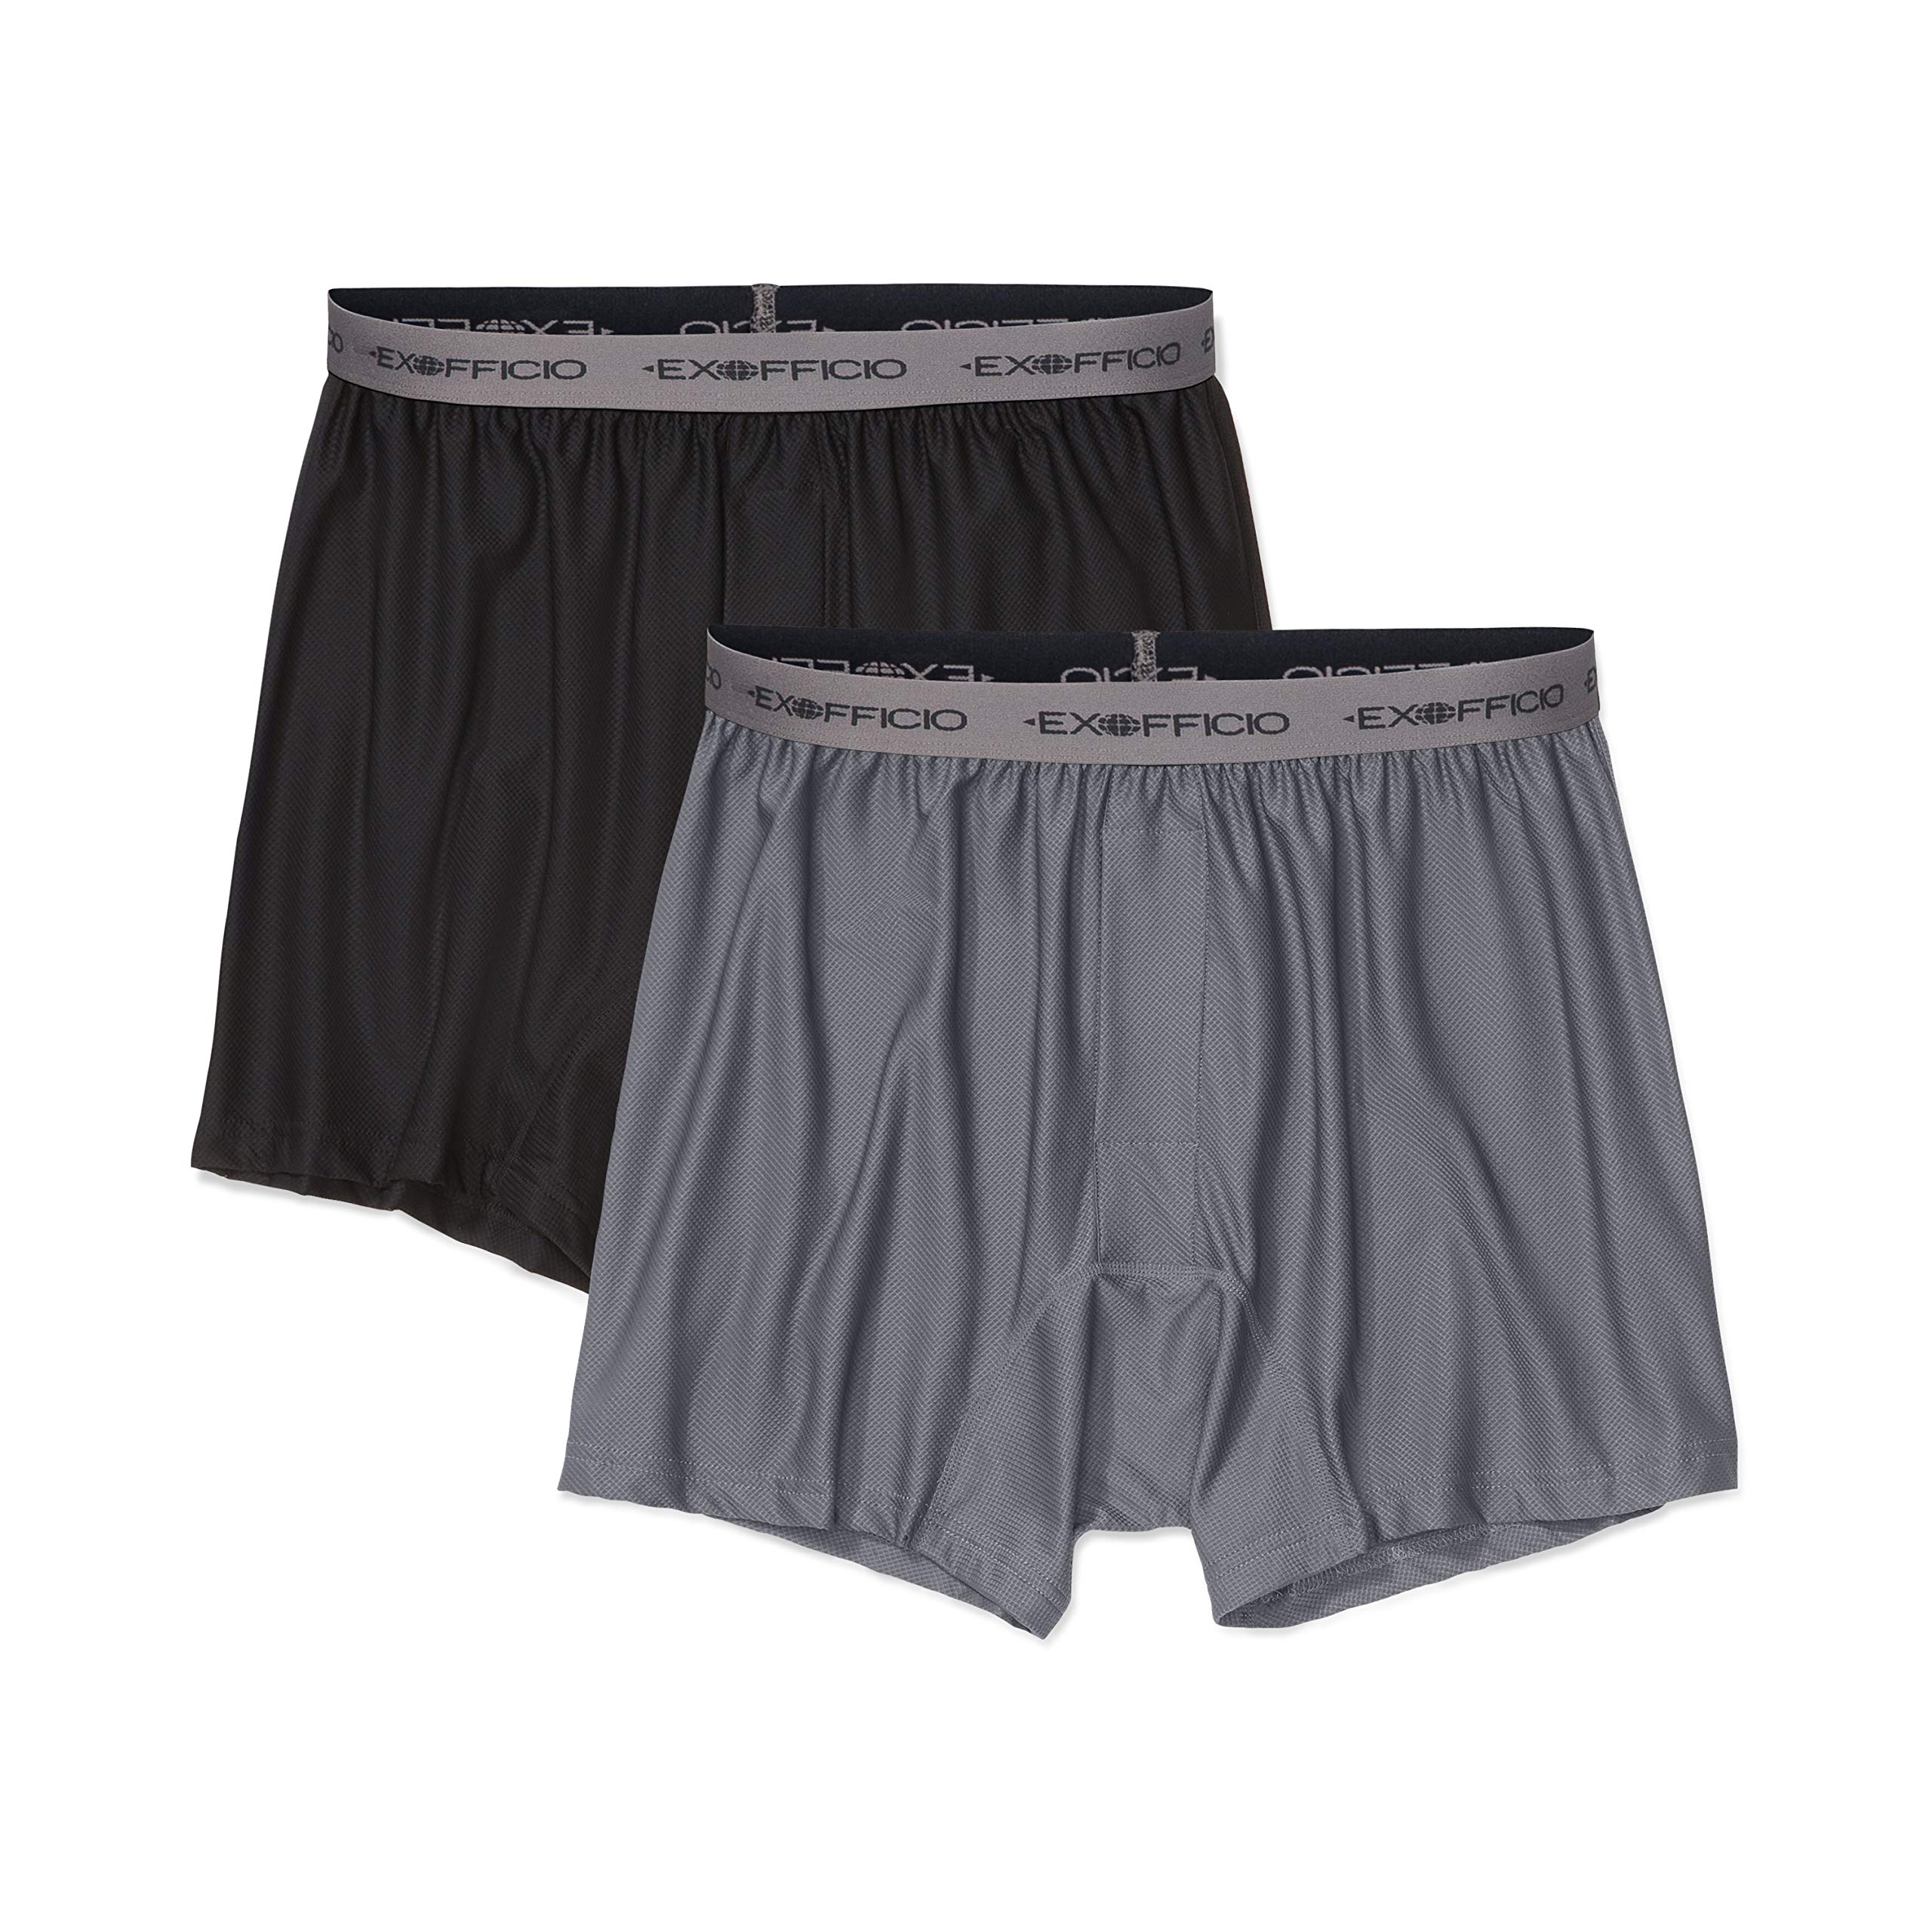 ExOfficio Men's Give-N-Go Boxer,  Granite/Black,  2 Pack - X-Large by ExOfficio